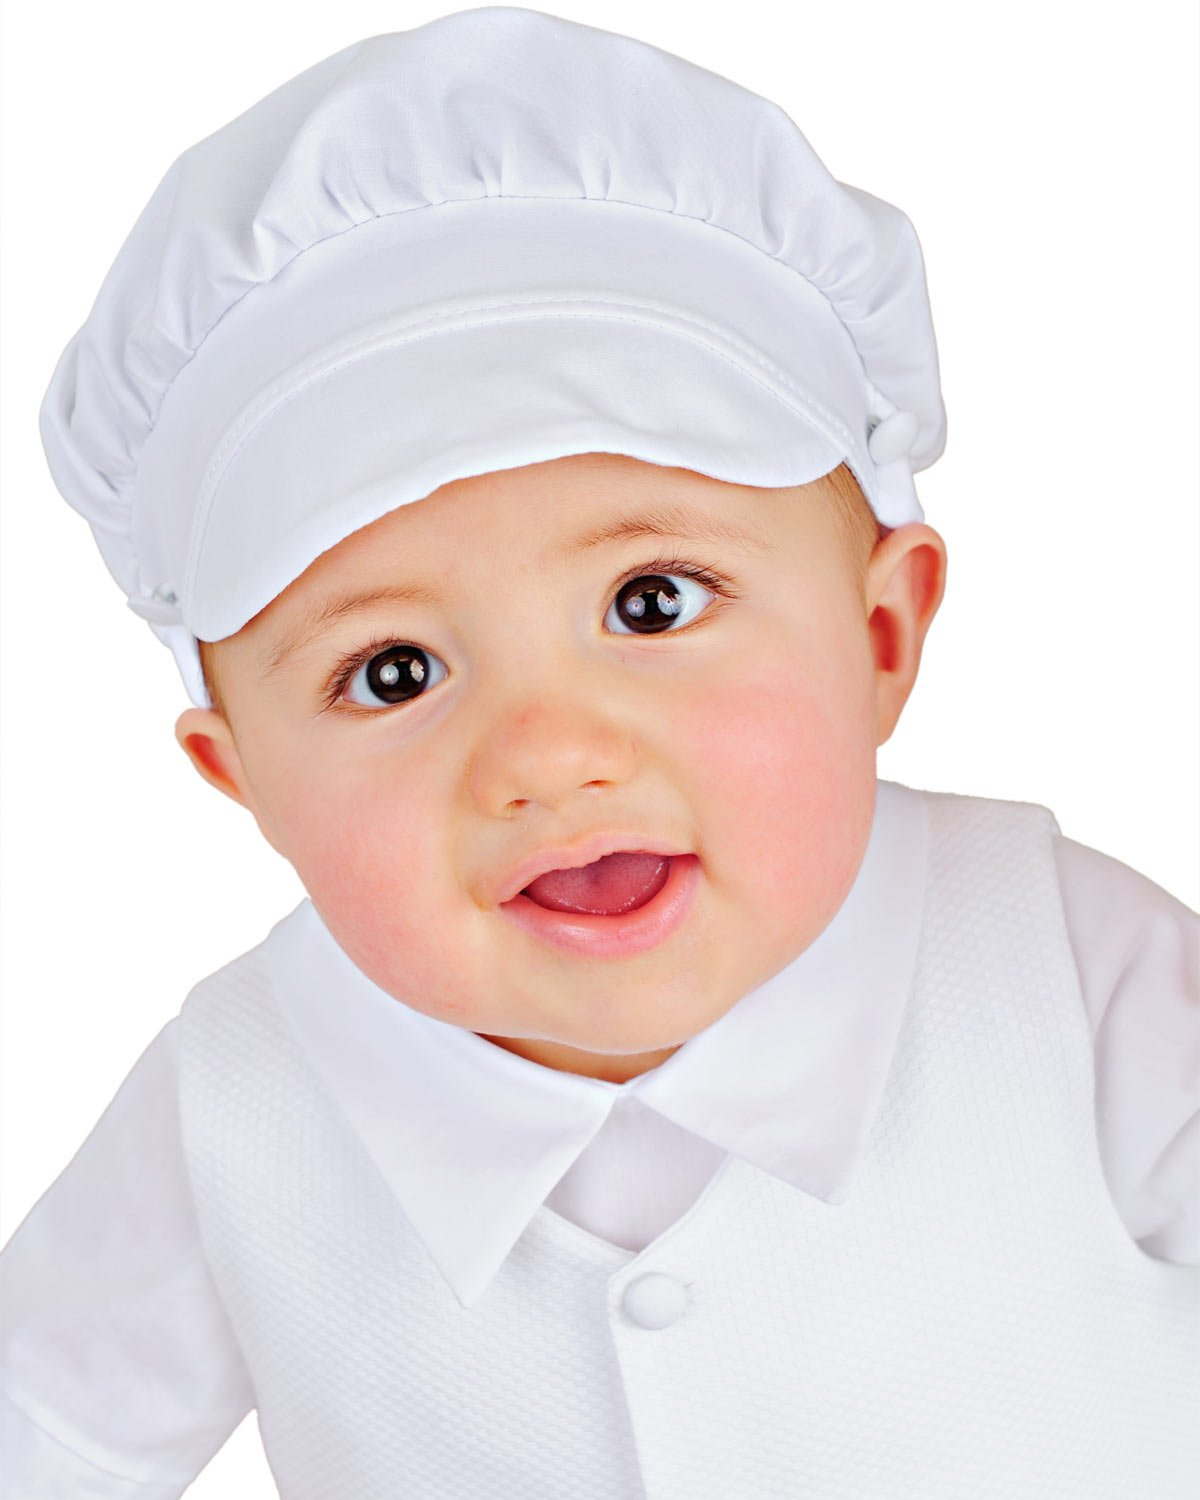 ec4f08e63 Amazon.com: Alex Christening or Baptism Outfit for Boys, Made in USA: Baby